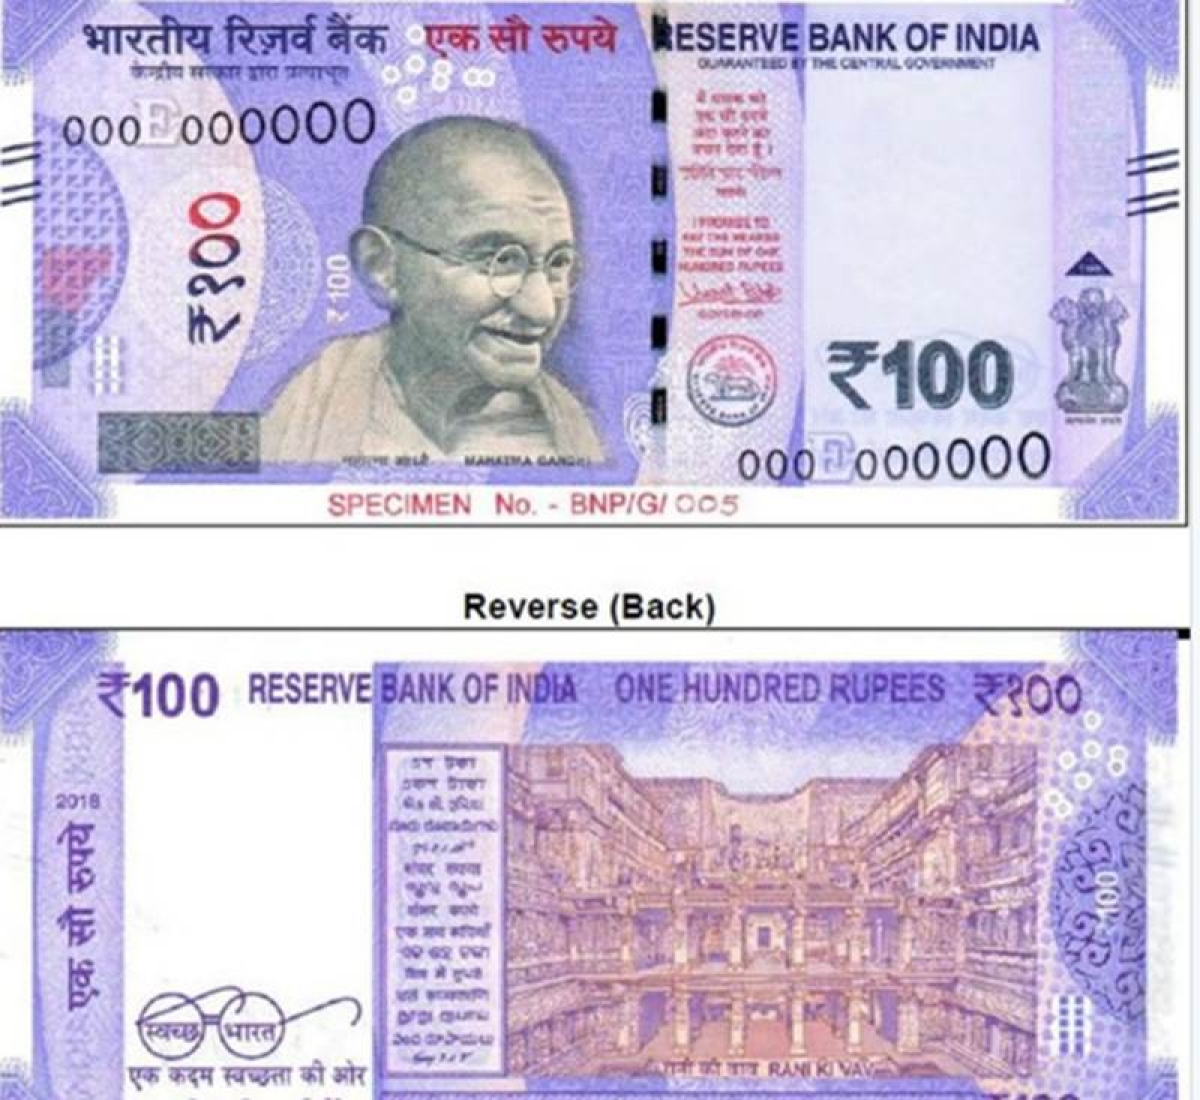 RBI to soon issue new Rs 100 note in lavender colour